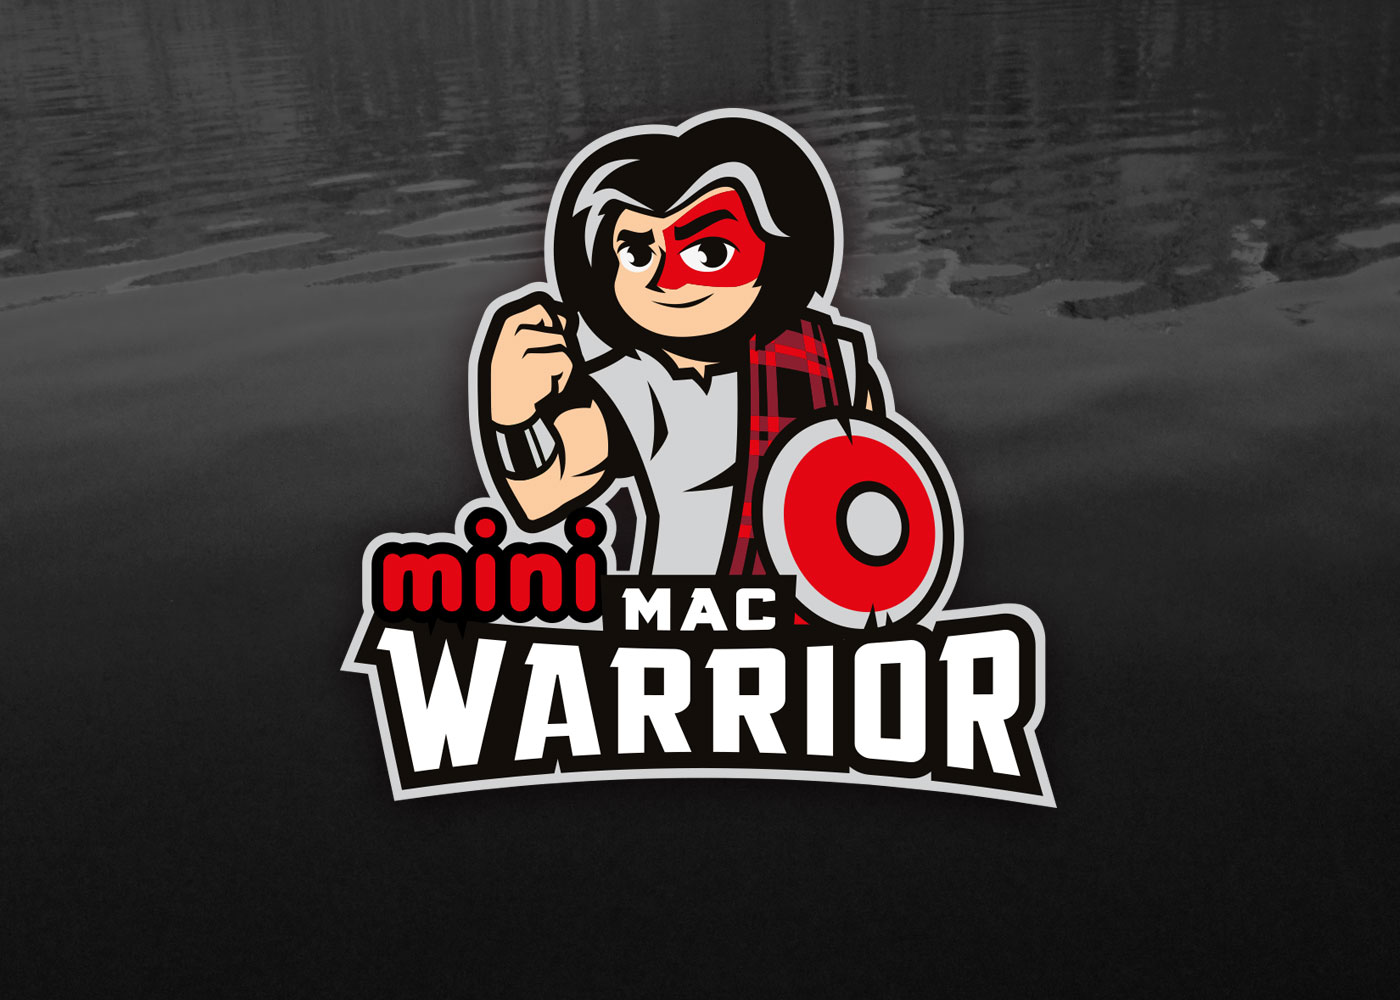 MAC-WARRIOR_WebPage_03